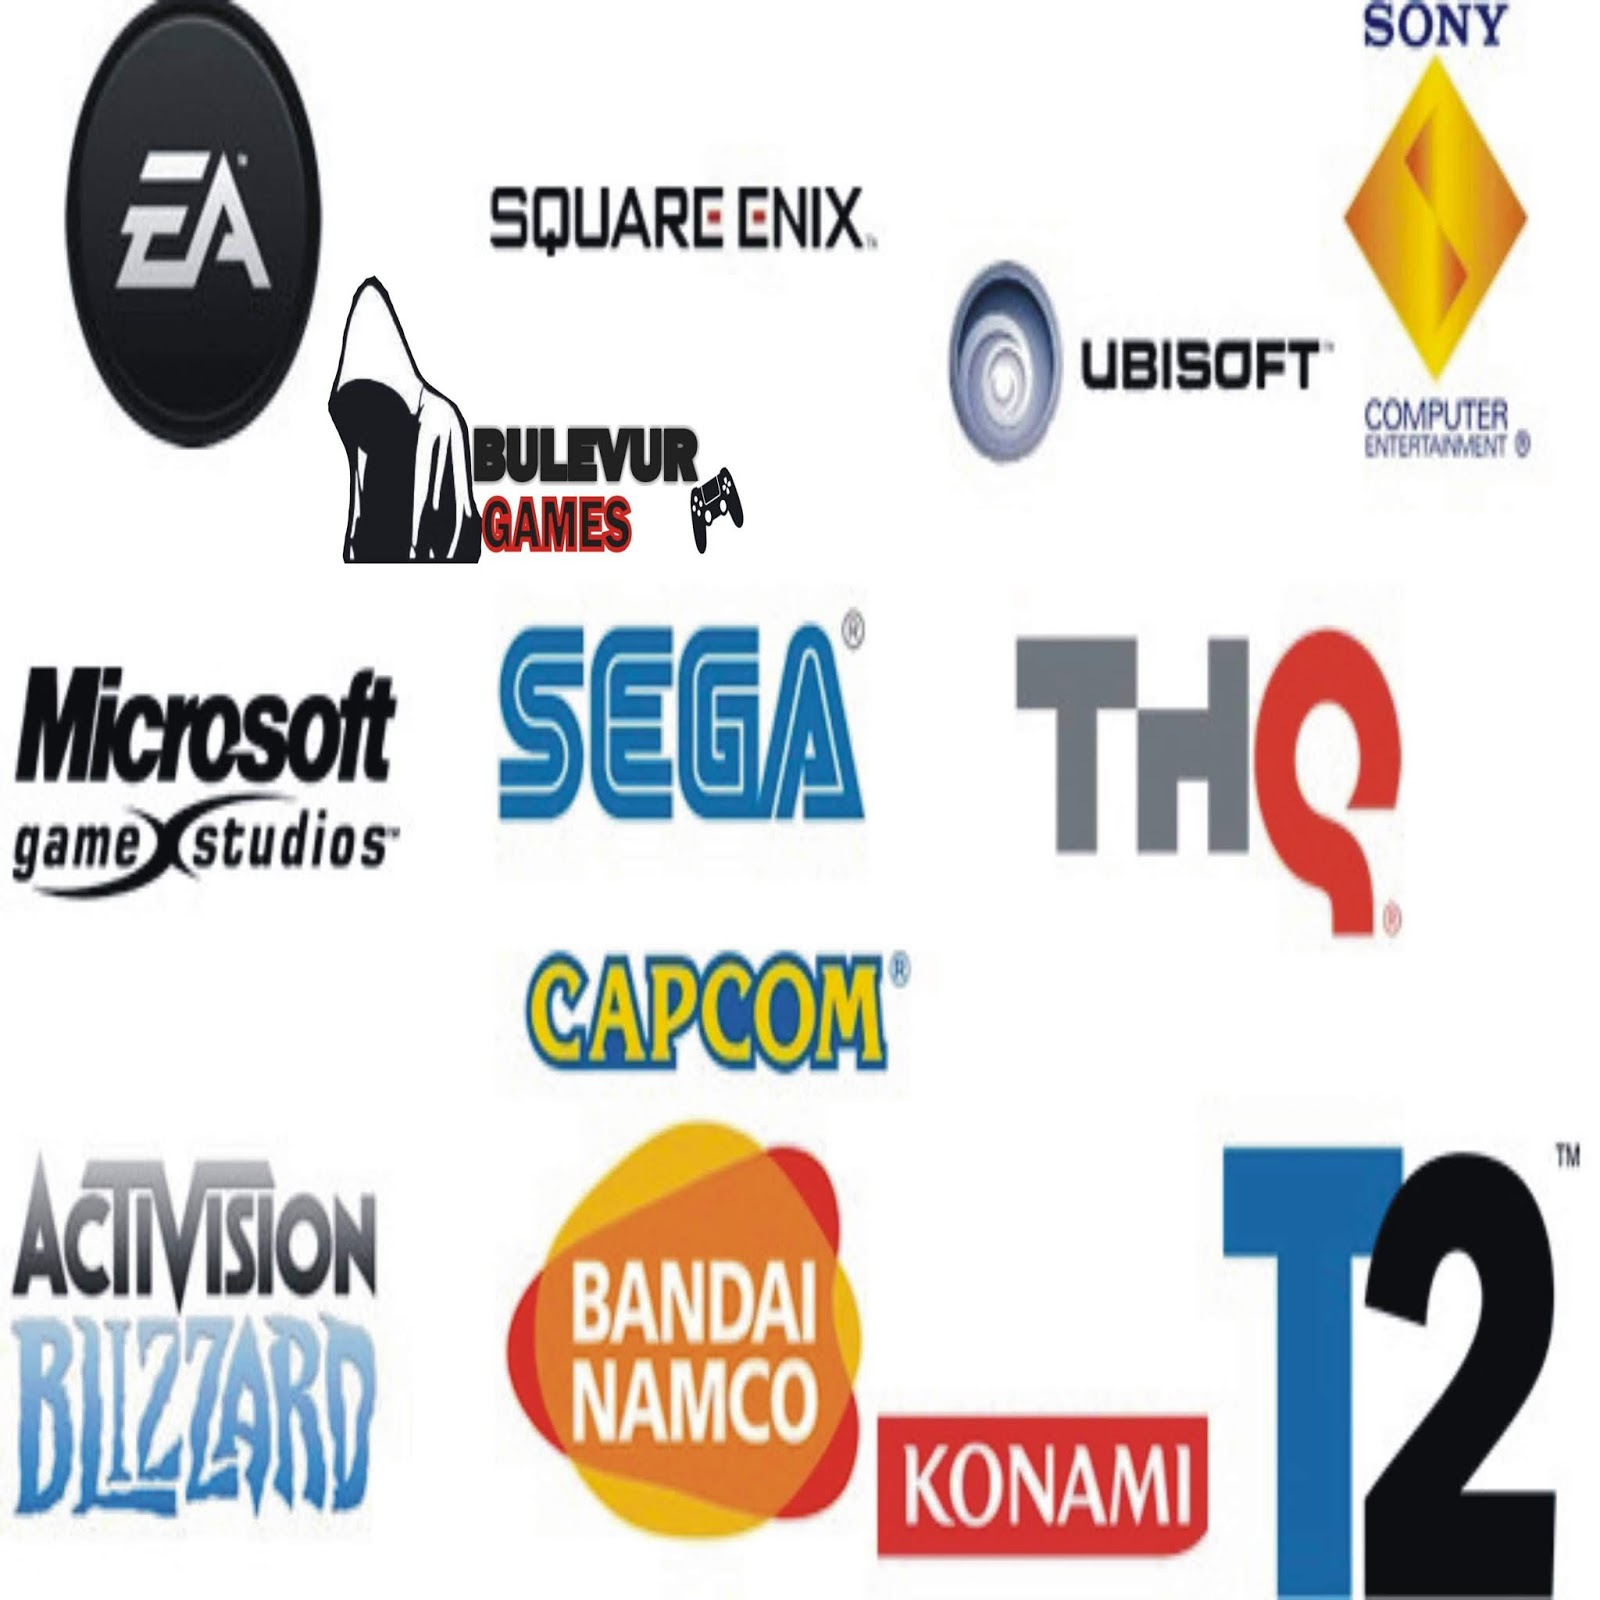 Top 10 Video Game Company Names With Their World Ranking